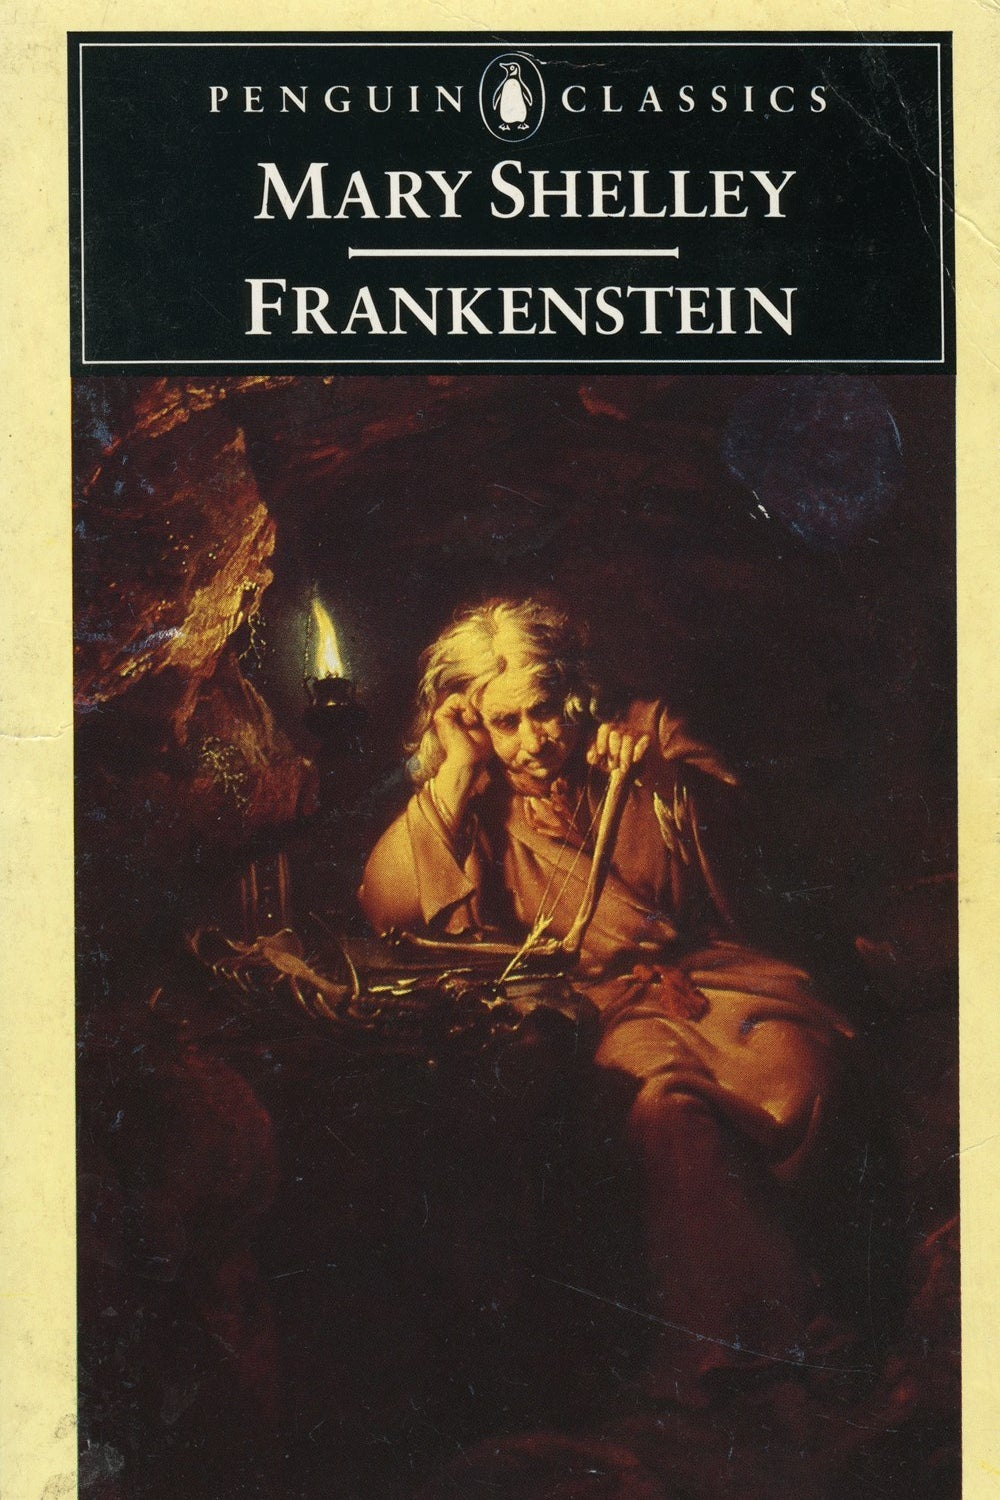 an analysis of the theme of obsession and how it leads to demise in the novel frankenstein by mary s